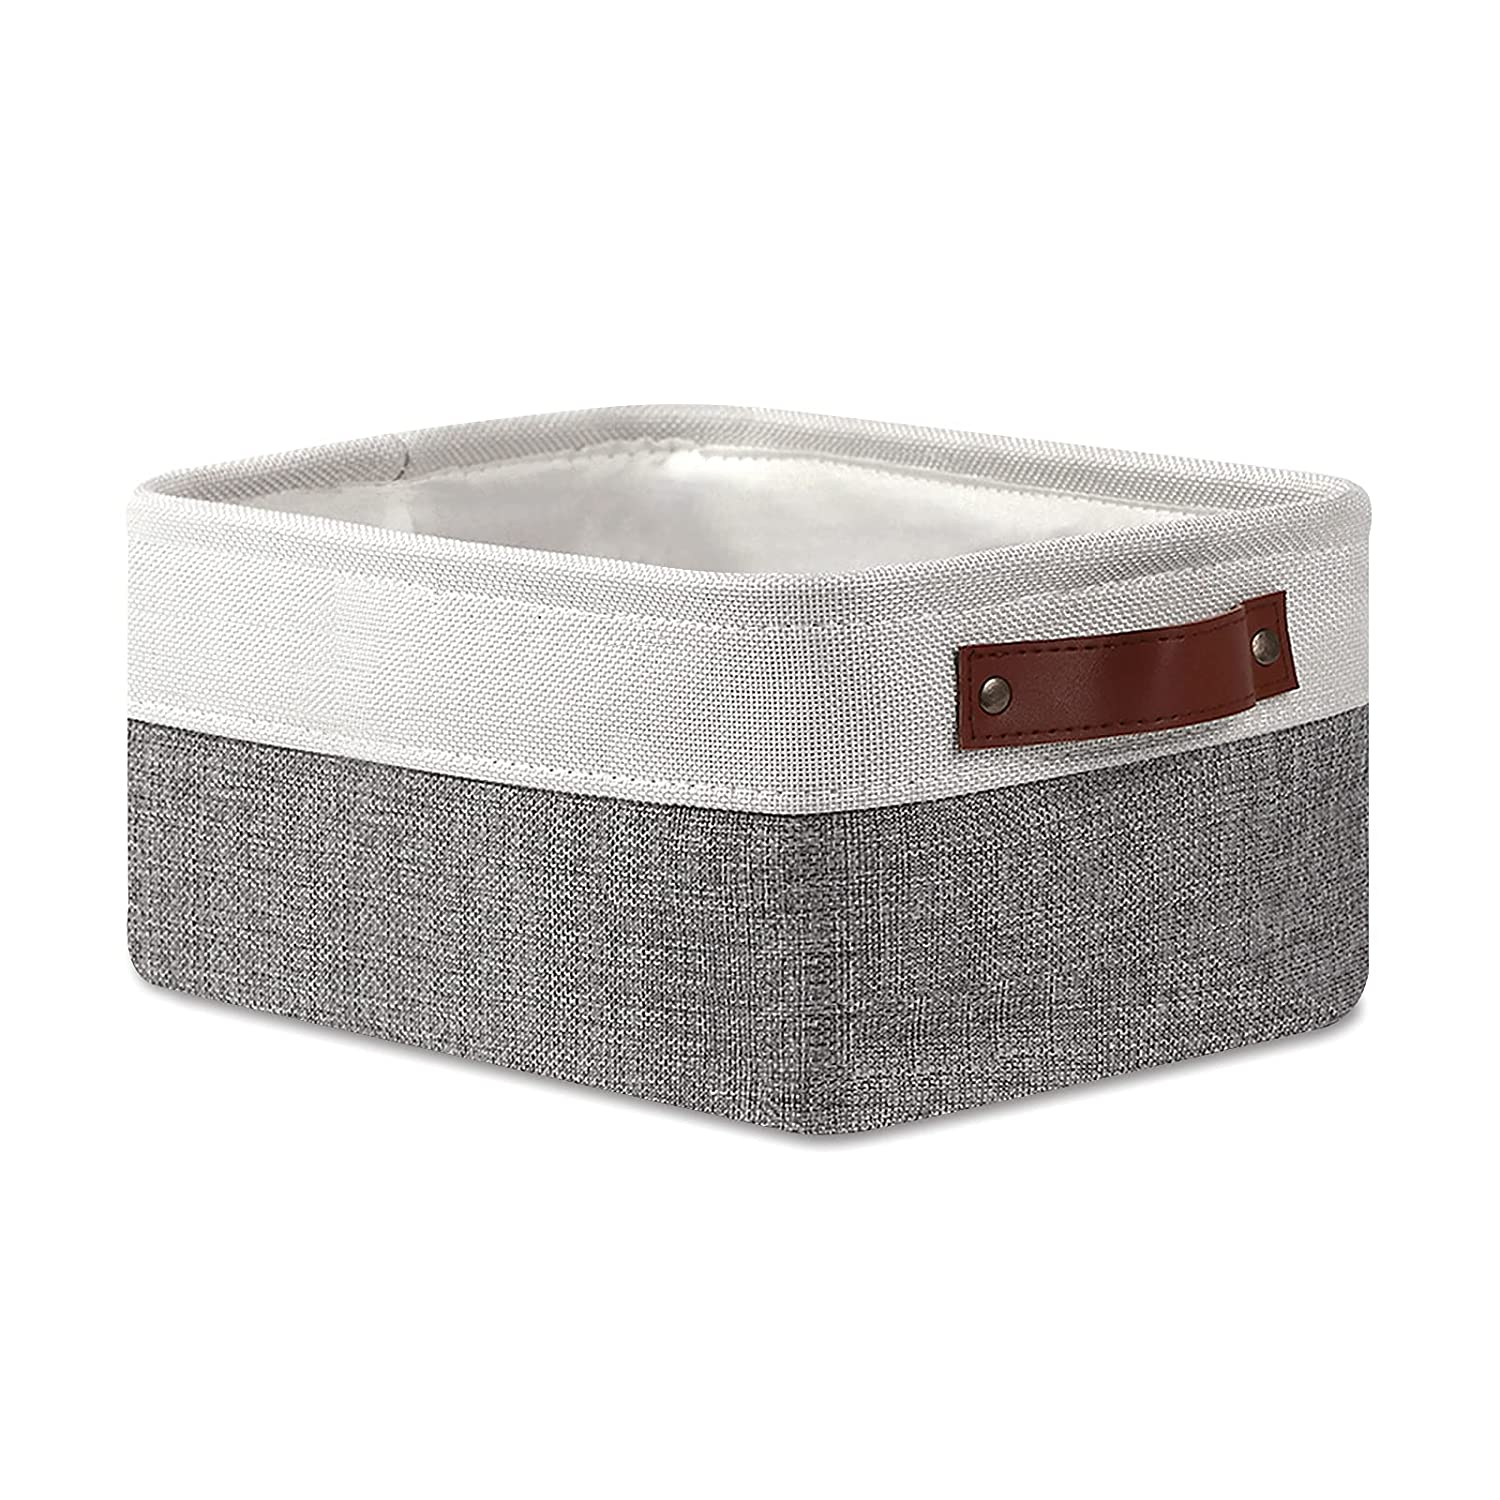 HNZIGE Storage Max 70% OFF Baskets for Fabric Organizing Austin Mall Small